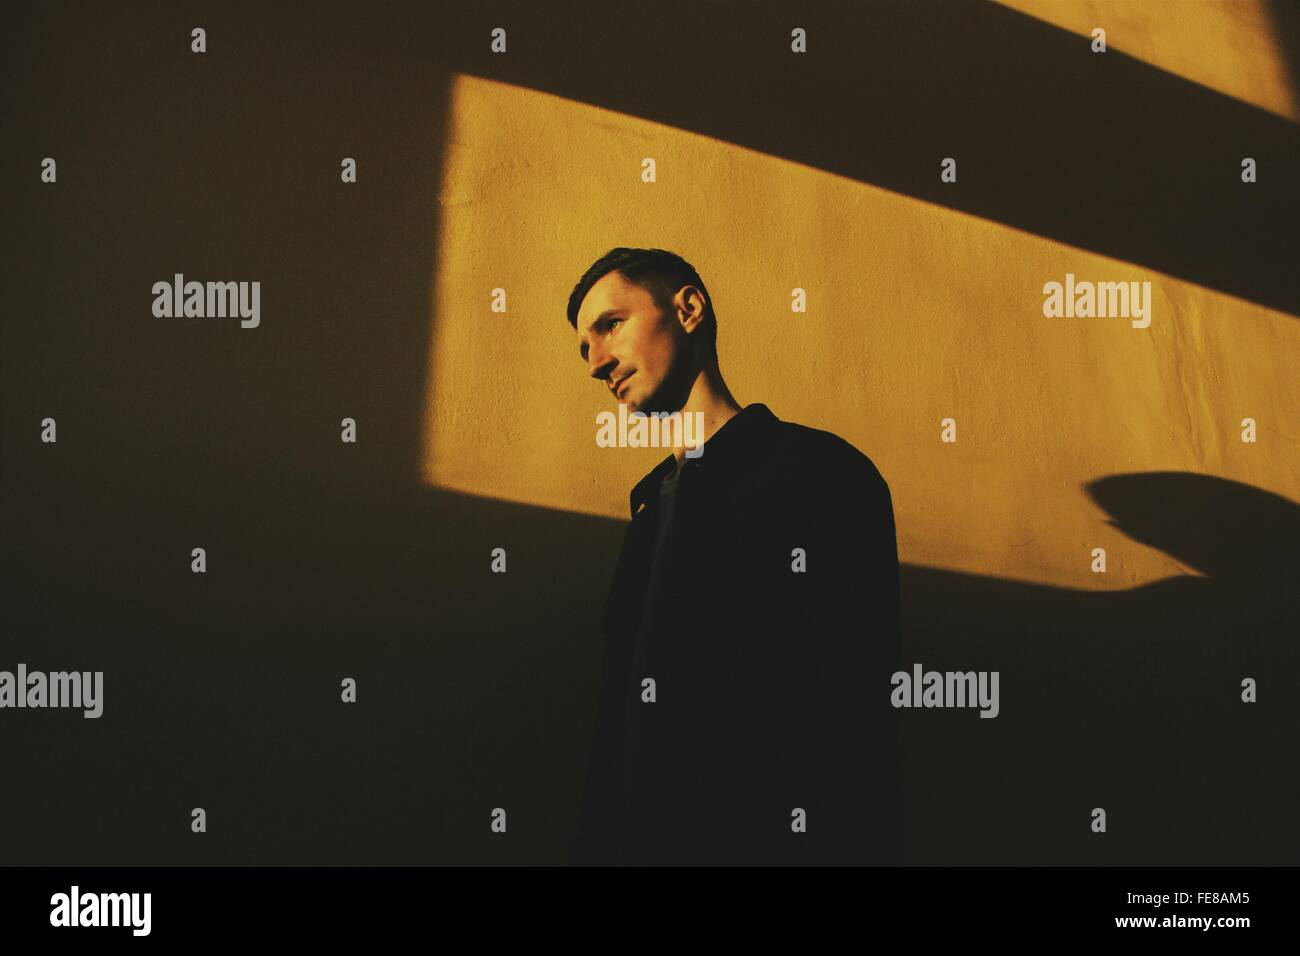 Low Angle View Of Young Man Standing Against Wall - Stock Image